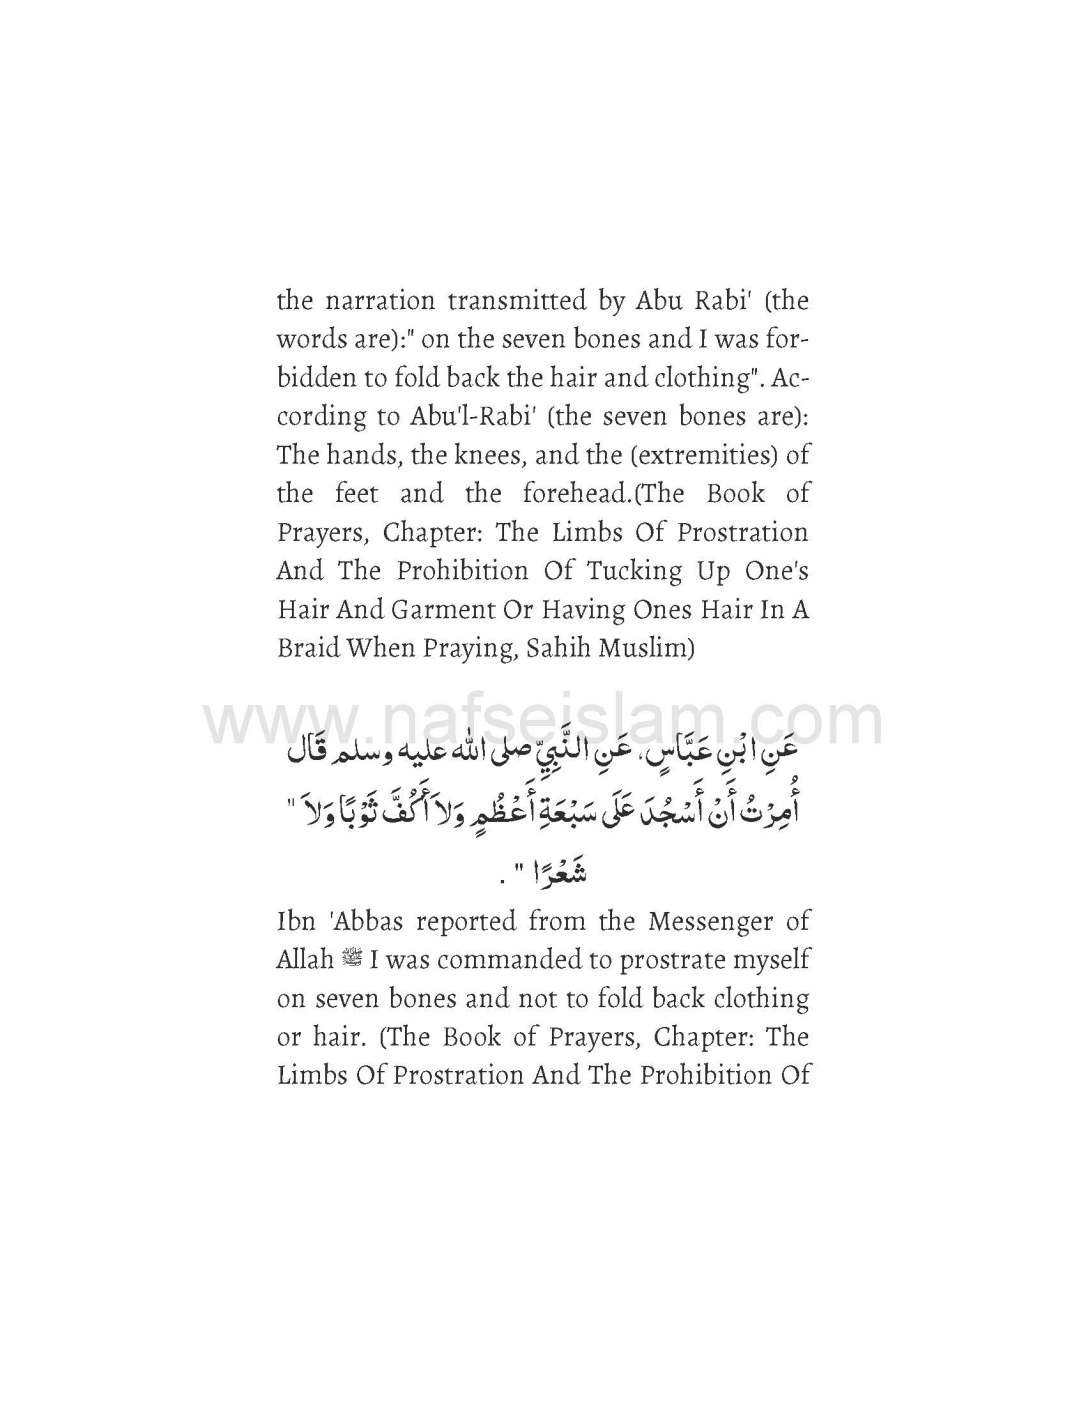 Islamic Ruling On Folding Pants In Salah_Page_11